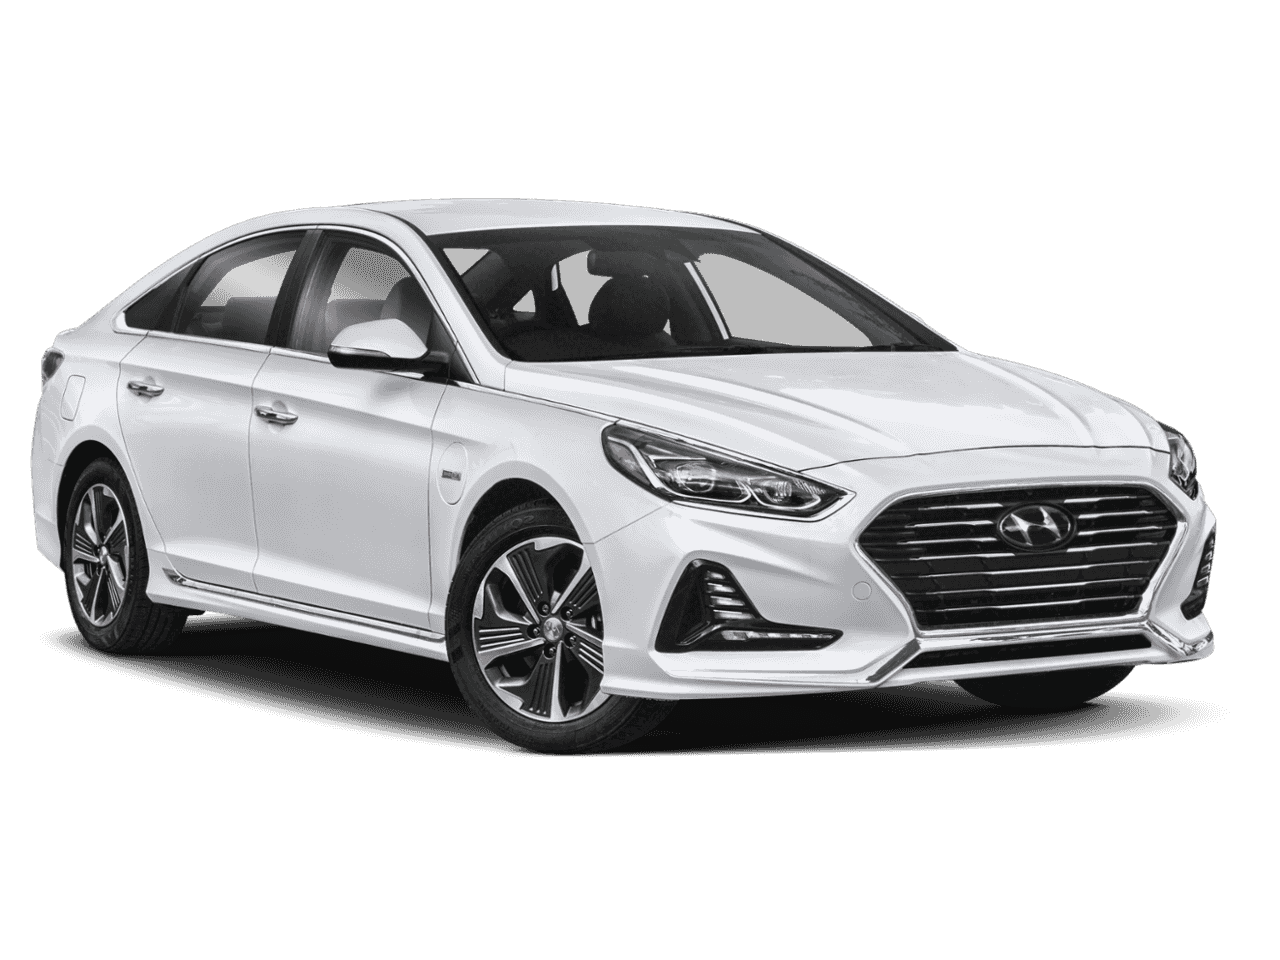 New 2019 Hyundai Sonata Plug-In Hybrid Base